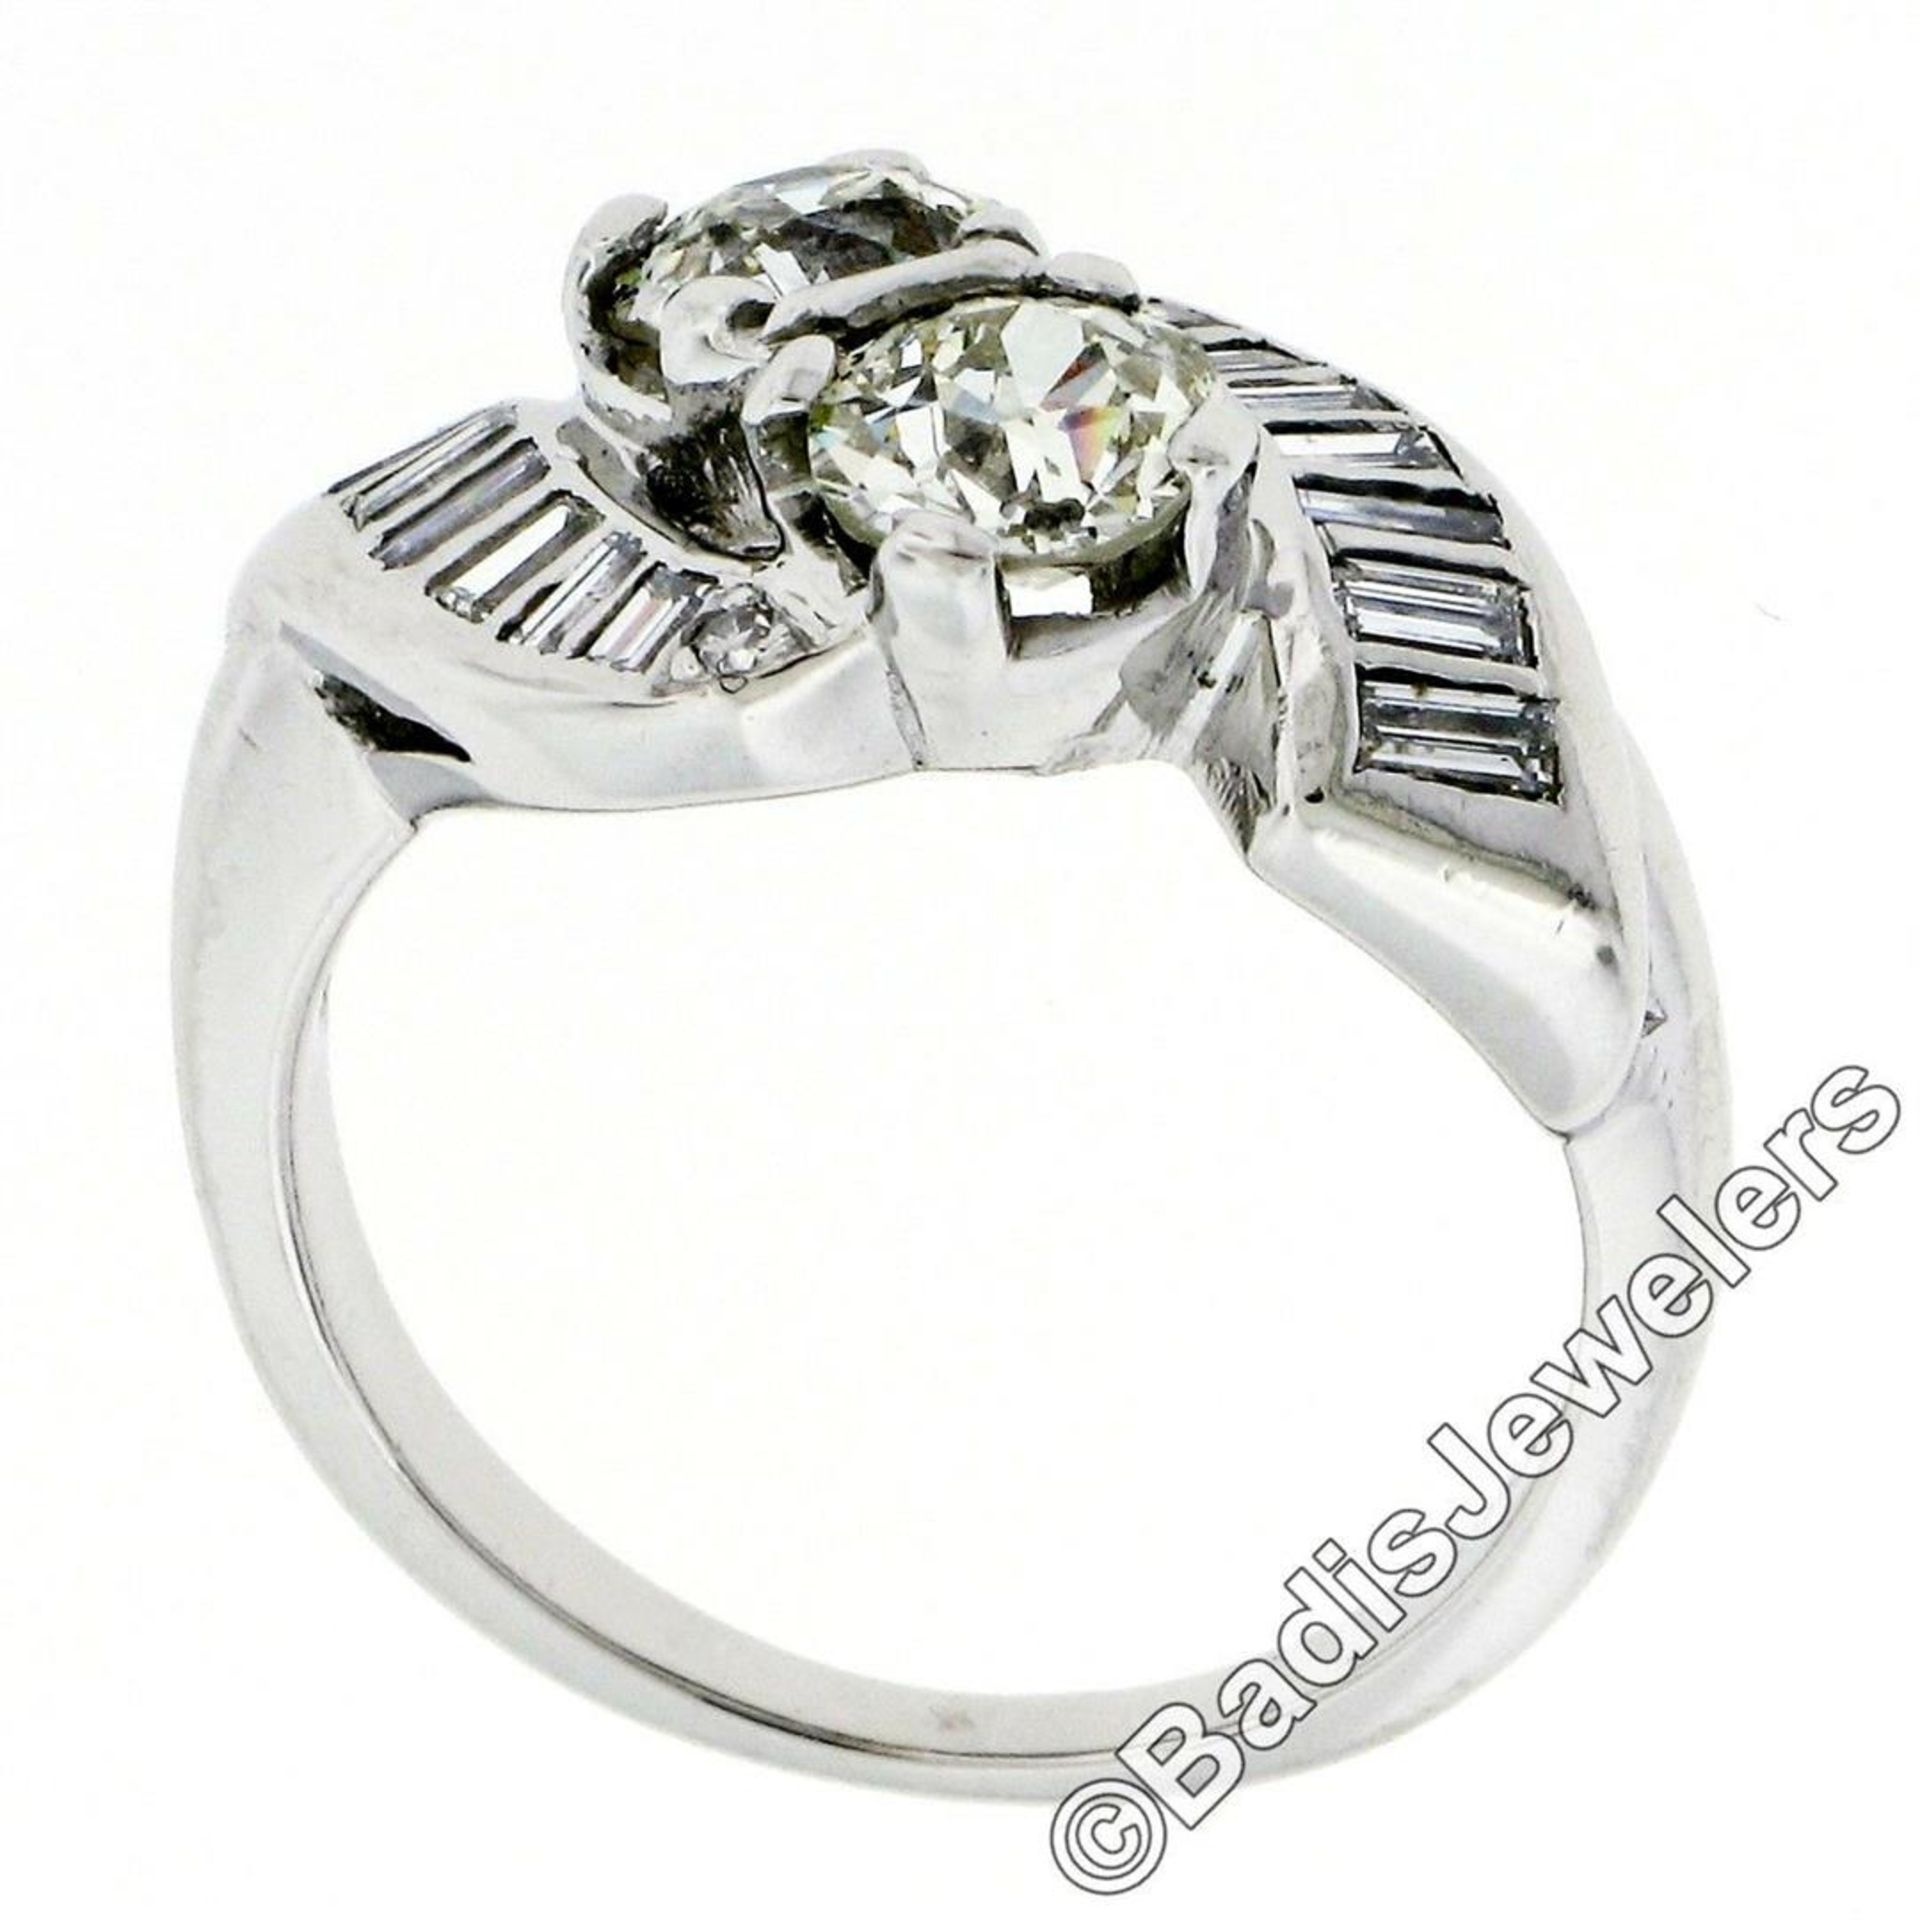 Art Deco Platinum 1.48 ctw Old European and Baguette Cut Diamond Bypass Ring - Image 6 of 9